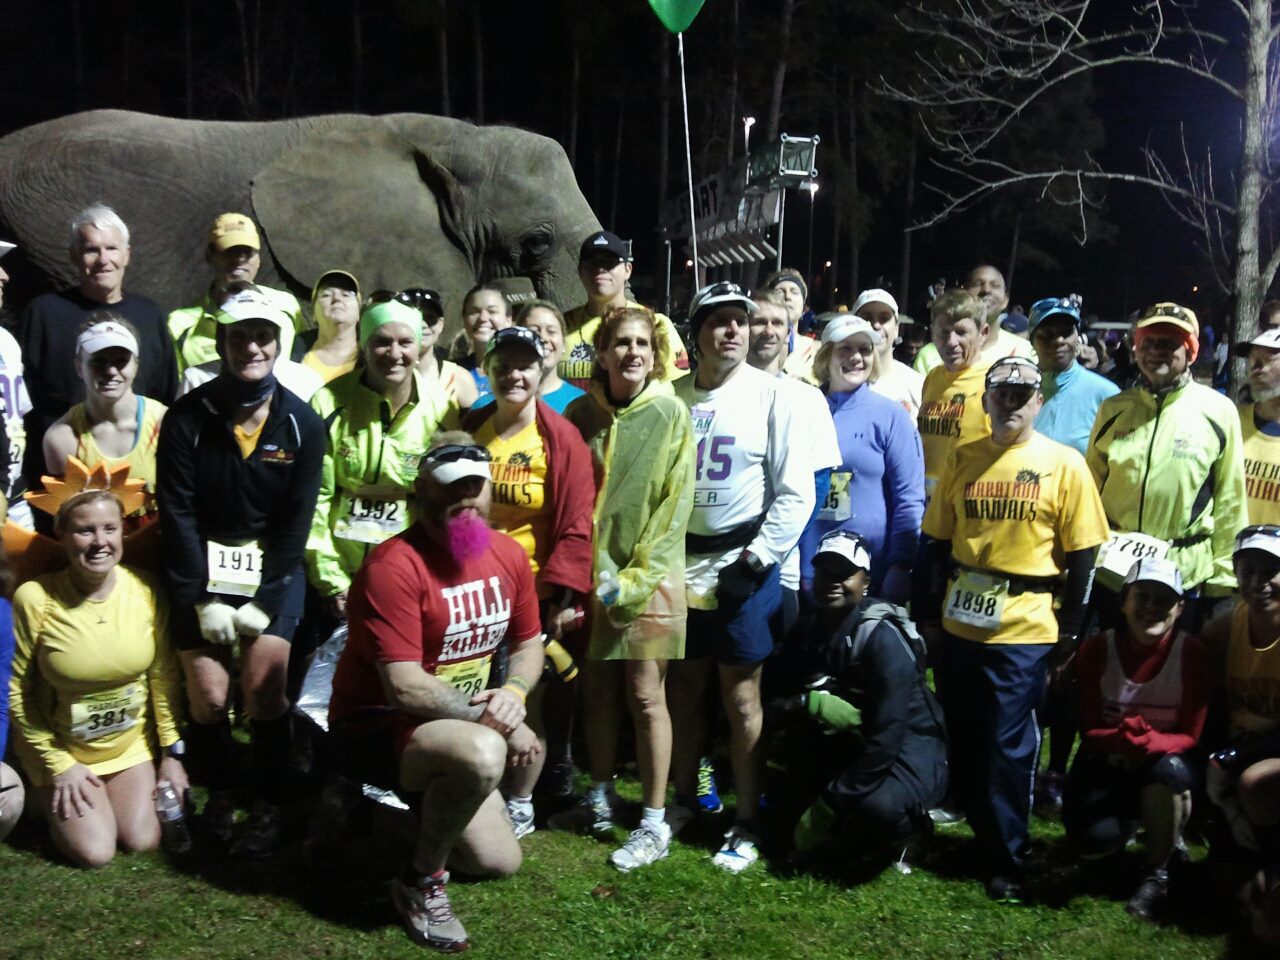 Oh you know, just your average starting line picture with an elephant.